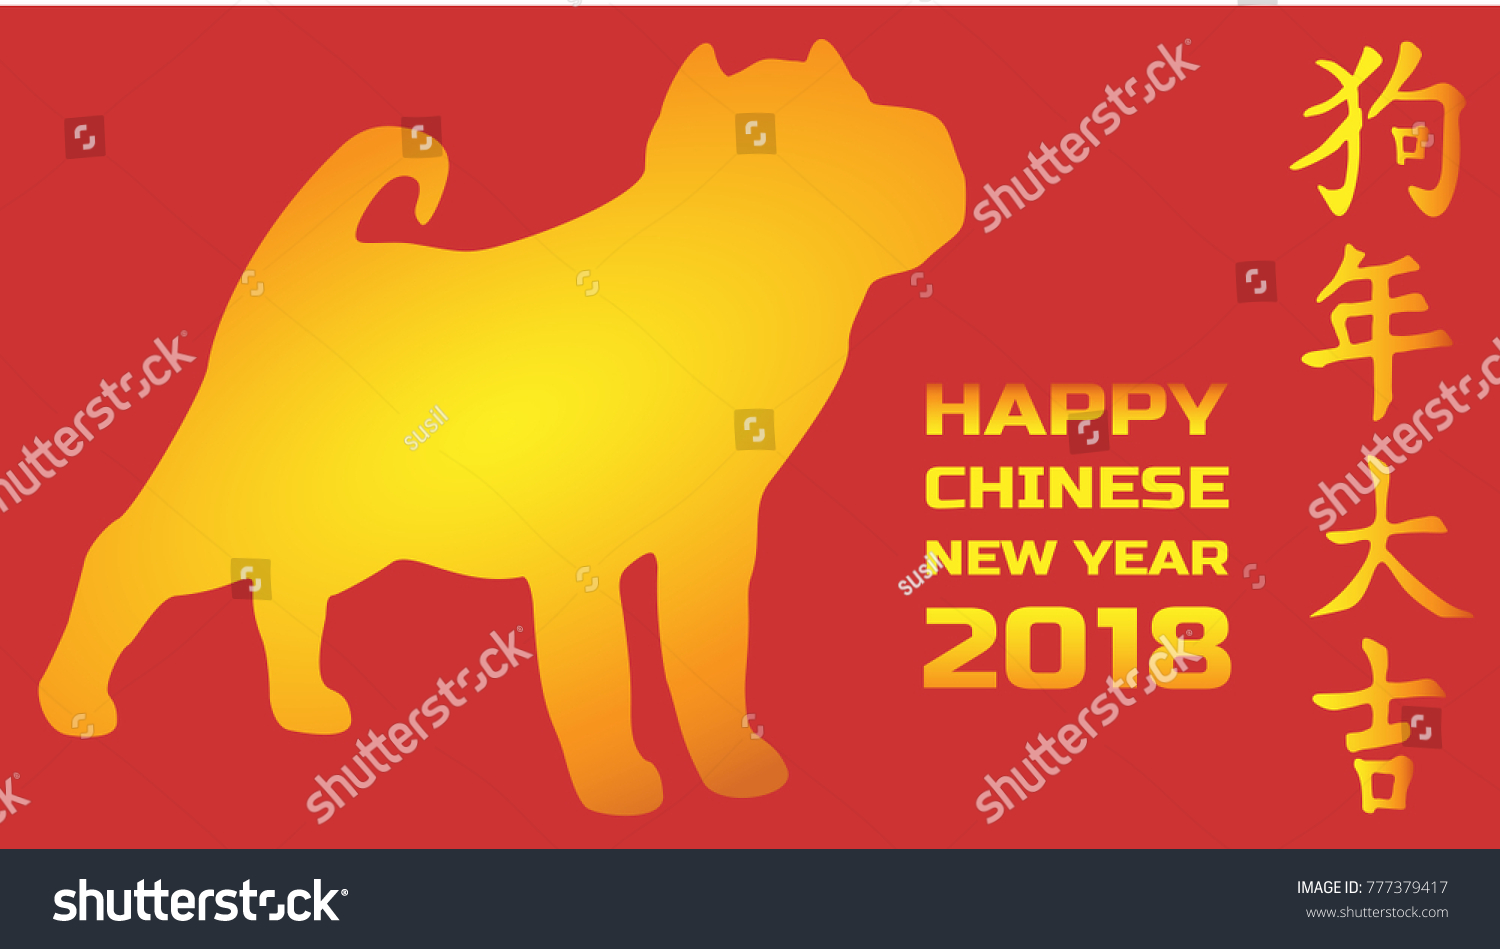 Illustration chinese new year greeting card stock vector 777379417 illustration of a chinese new year greeting card depicting a symbol of the year a buycottarizona Image collections